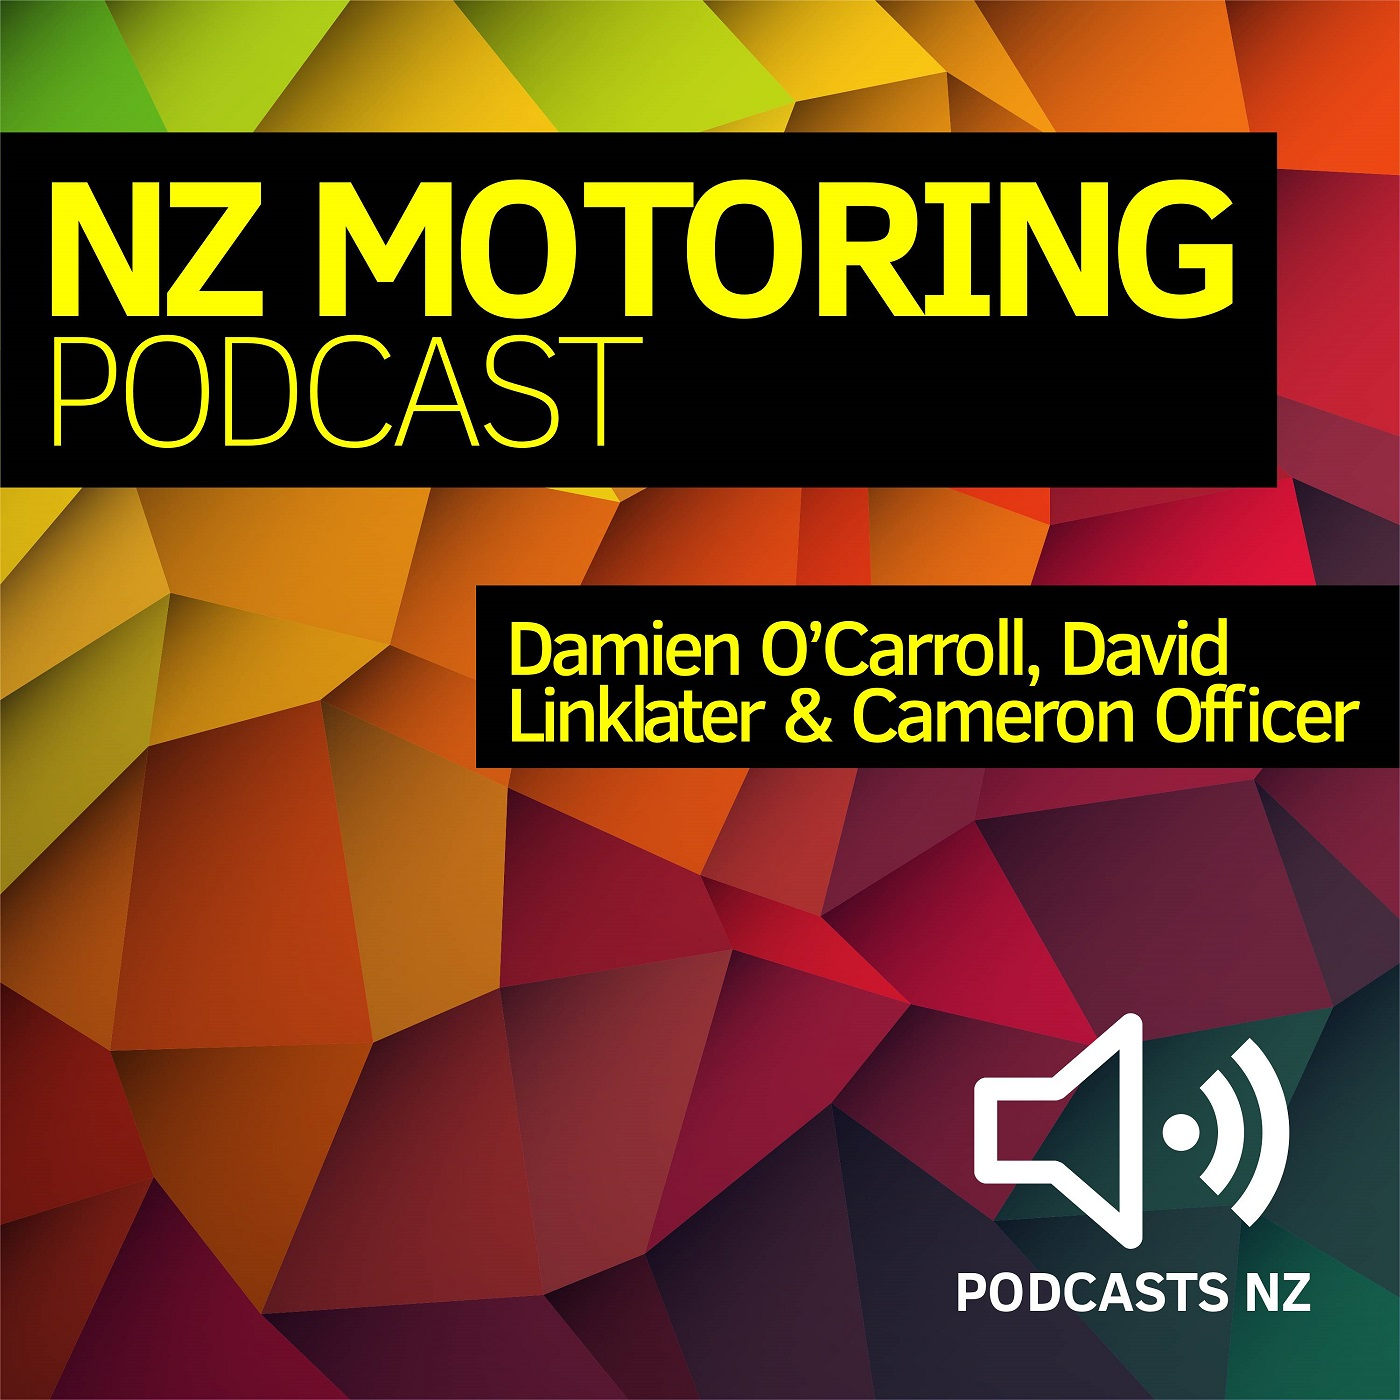 NZ Motoring Podcast